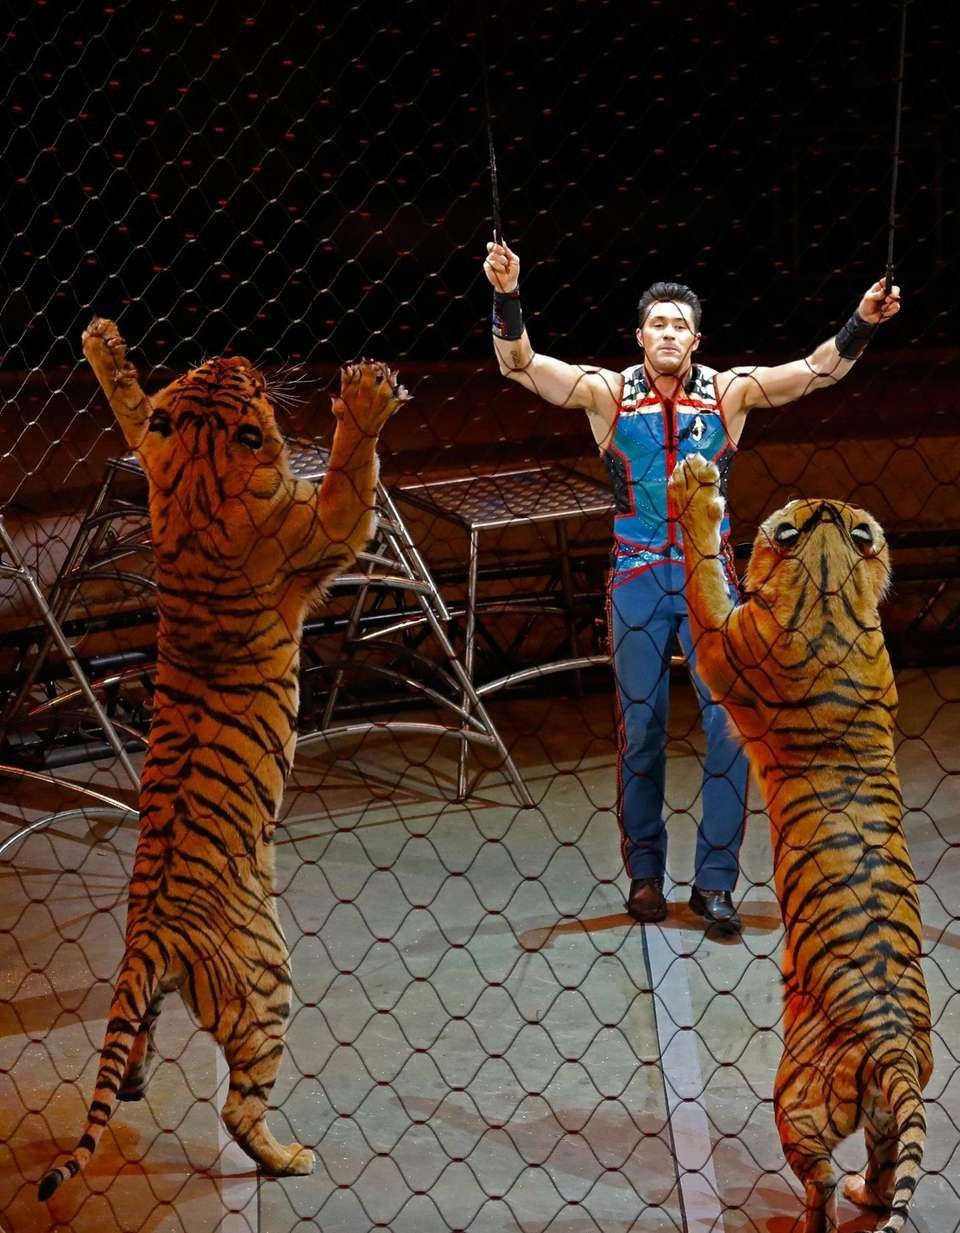 epa05979864 Animal trainer Alexander Lacey performs with tigers